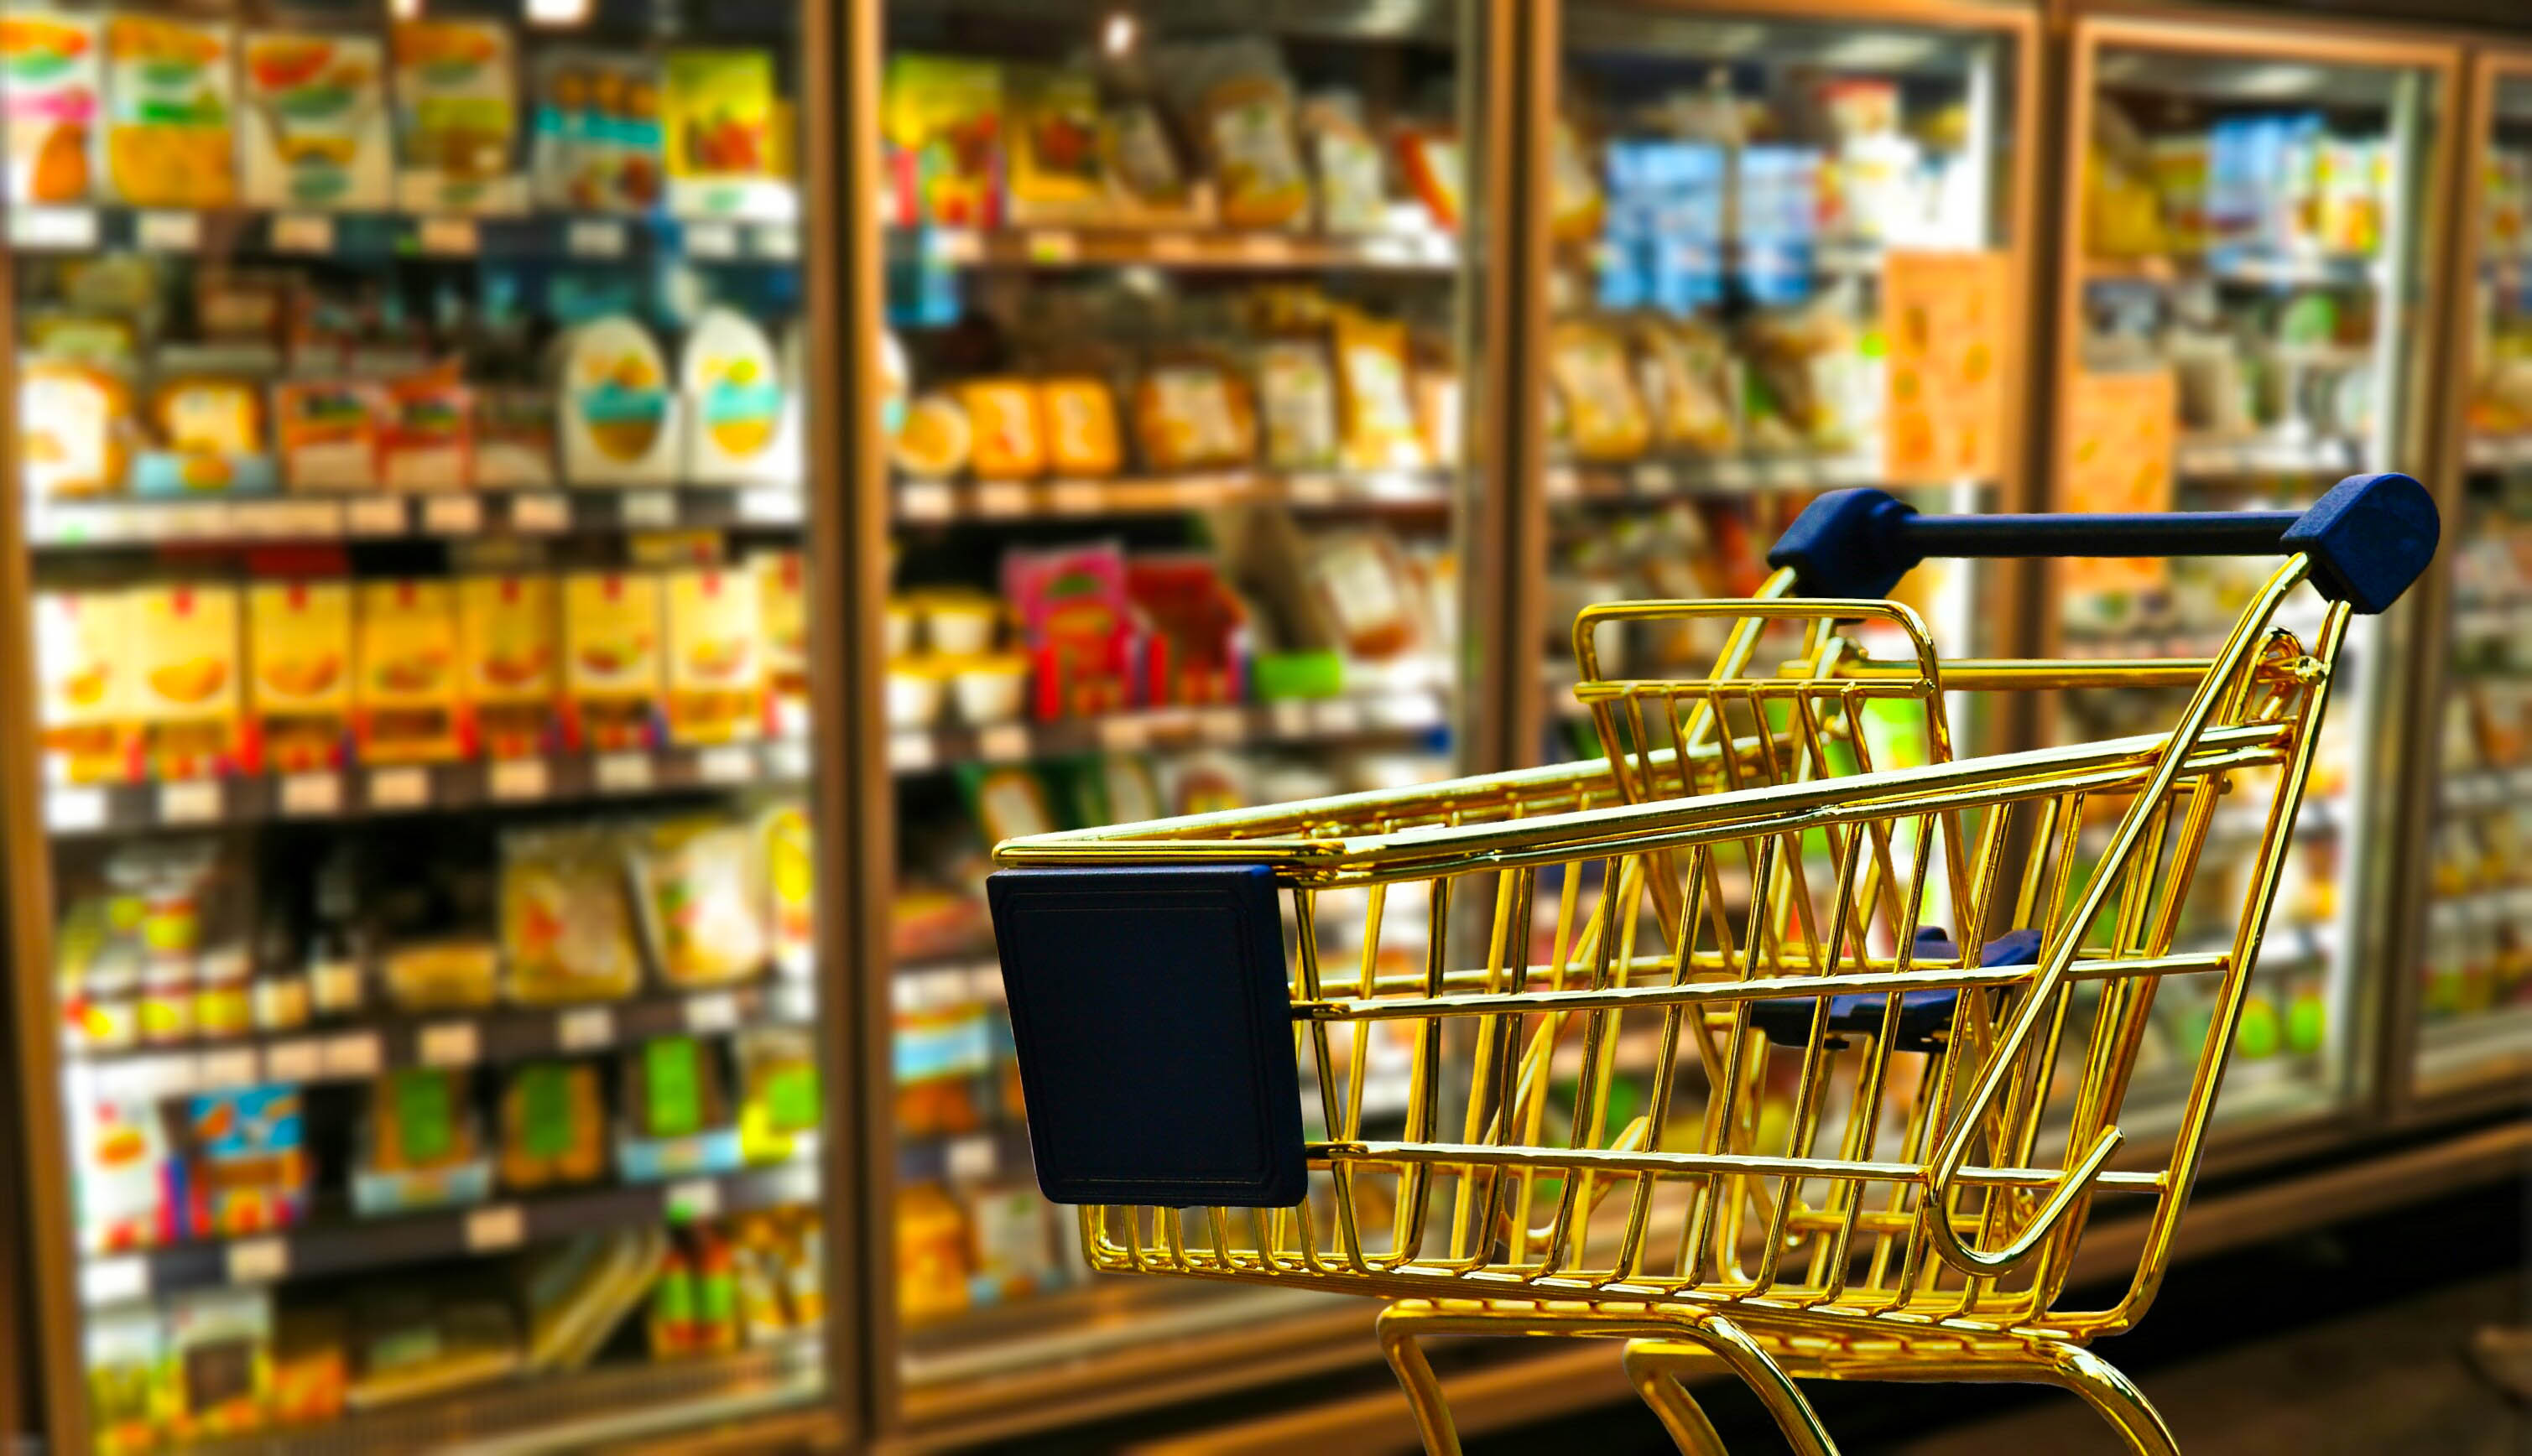 Grocery cart on a background of grocery items (in reference to planning your purchases as one way to save money)